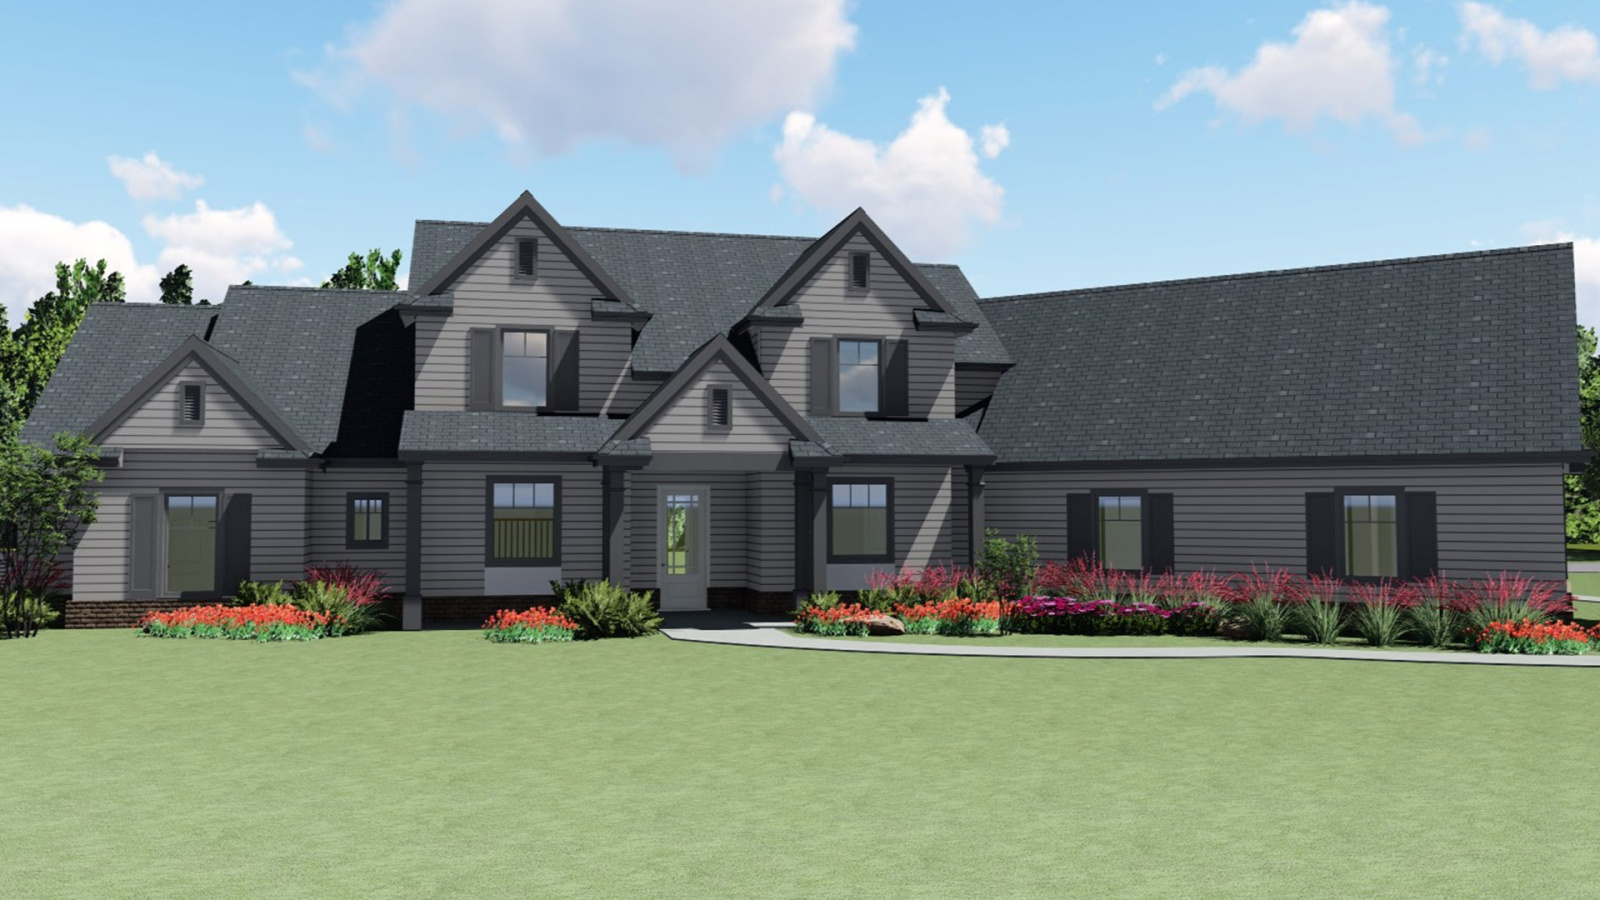 3 Bedrooms Bedrooms, ,3 BathroomsBathrooms,Custom Home,Featured Home Plans,1001